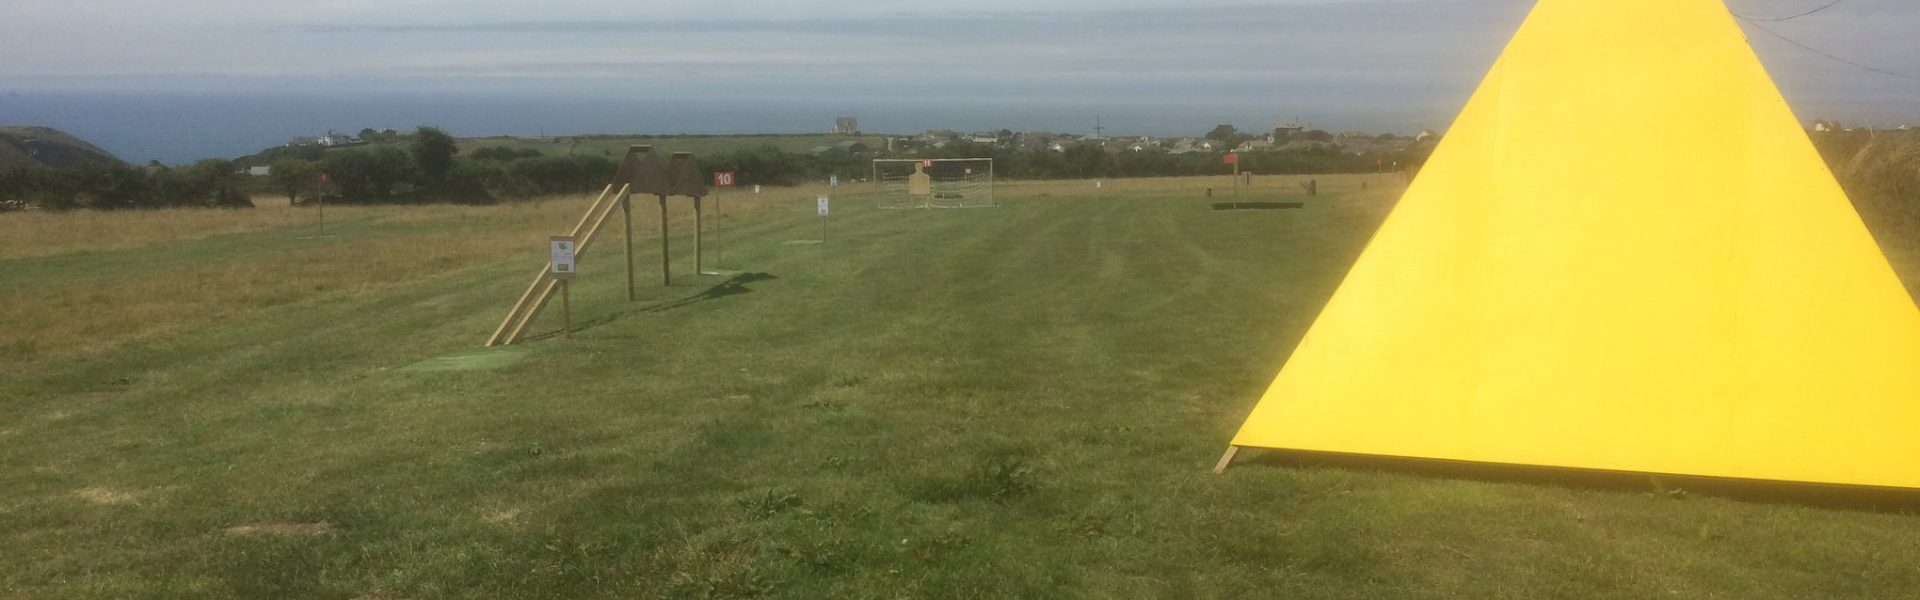 Dunks Footgolf Course - View from the 1st